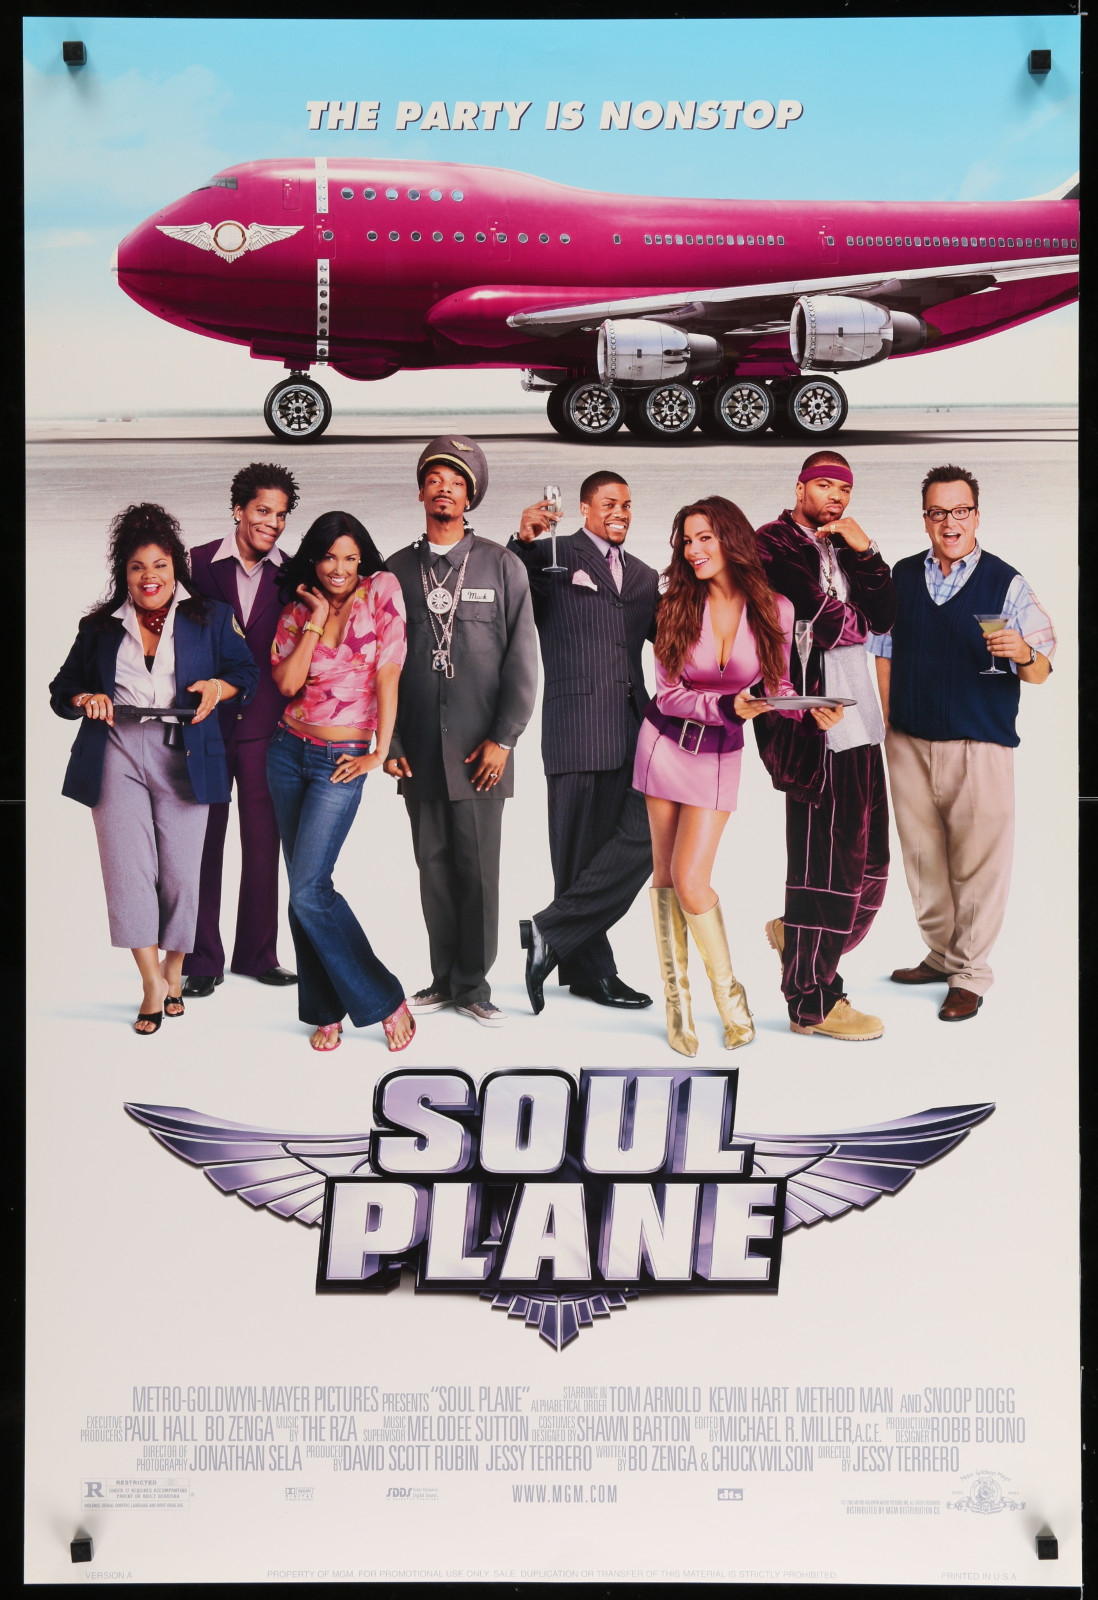 Soul Plane 2A366 A Part Of A Lot 29 Unfolded Double-Sided 27X40 One-Sheets '90S-00S Great Movie Images!